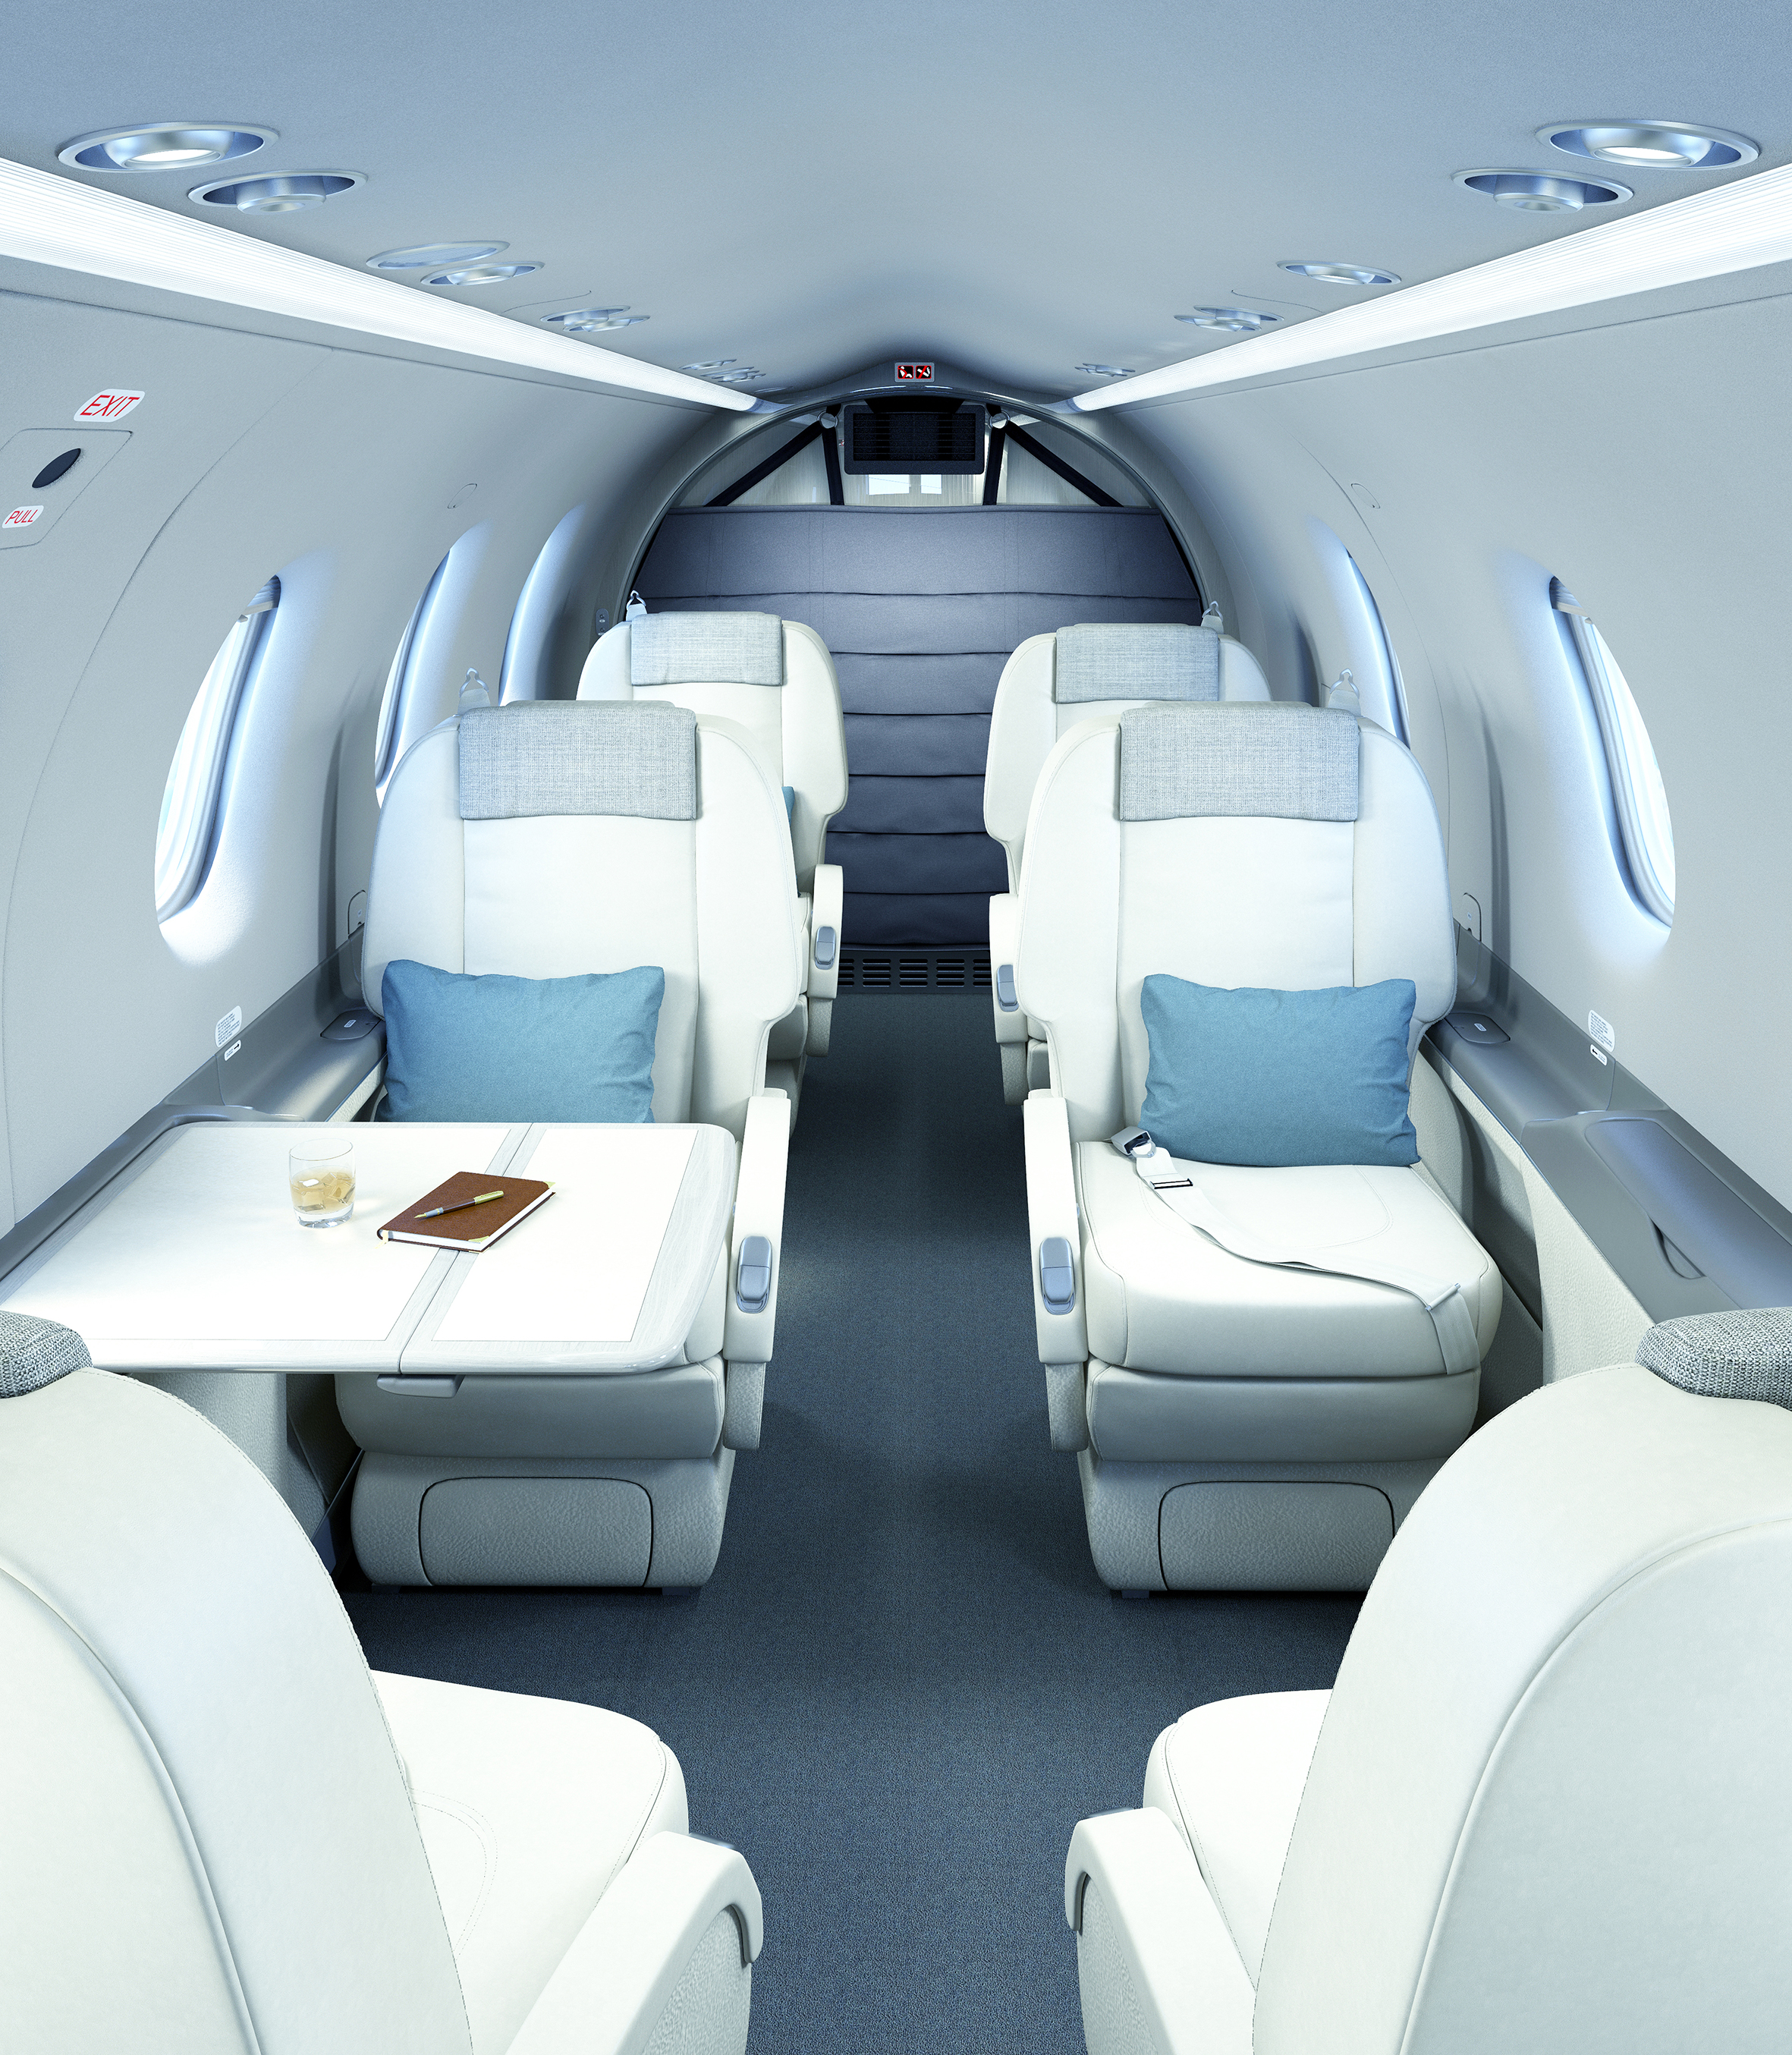 Go_Aviation_cabin